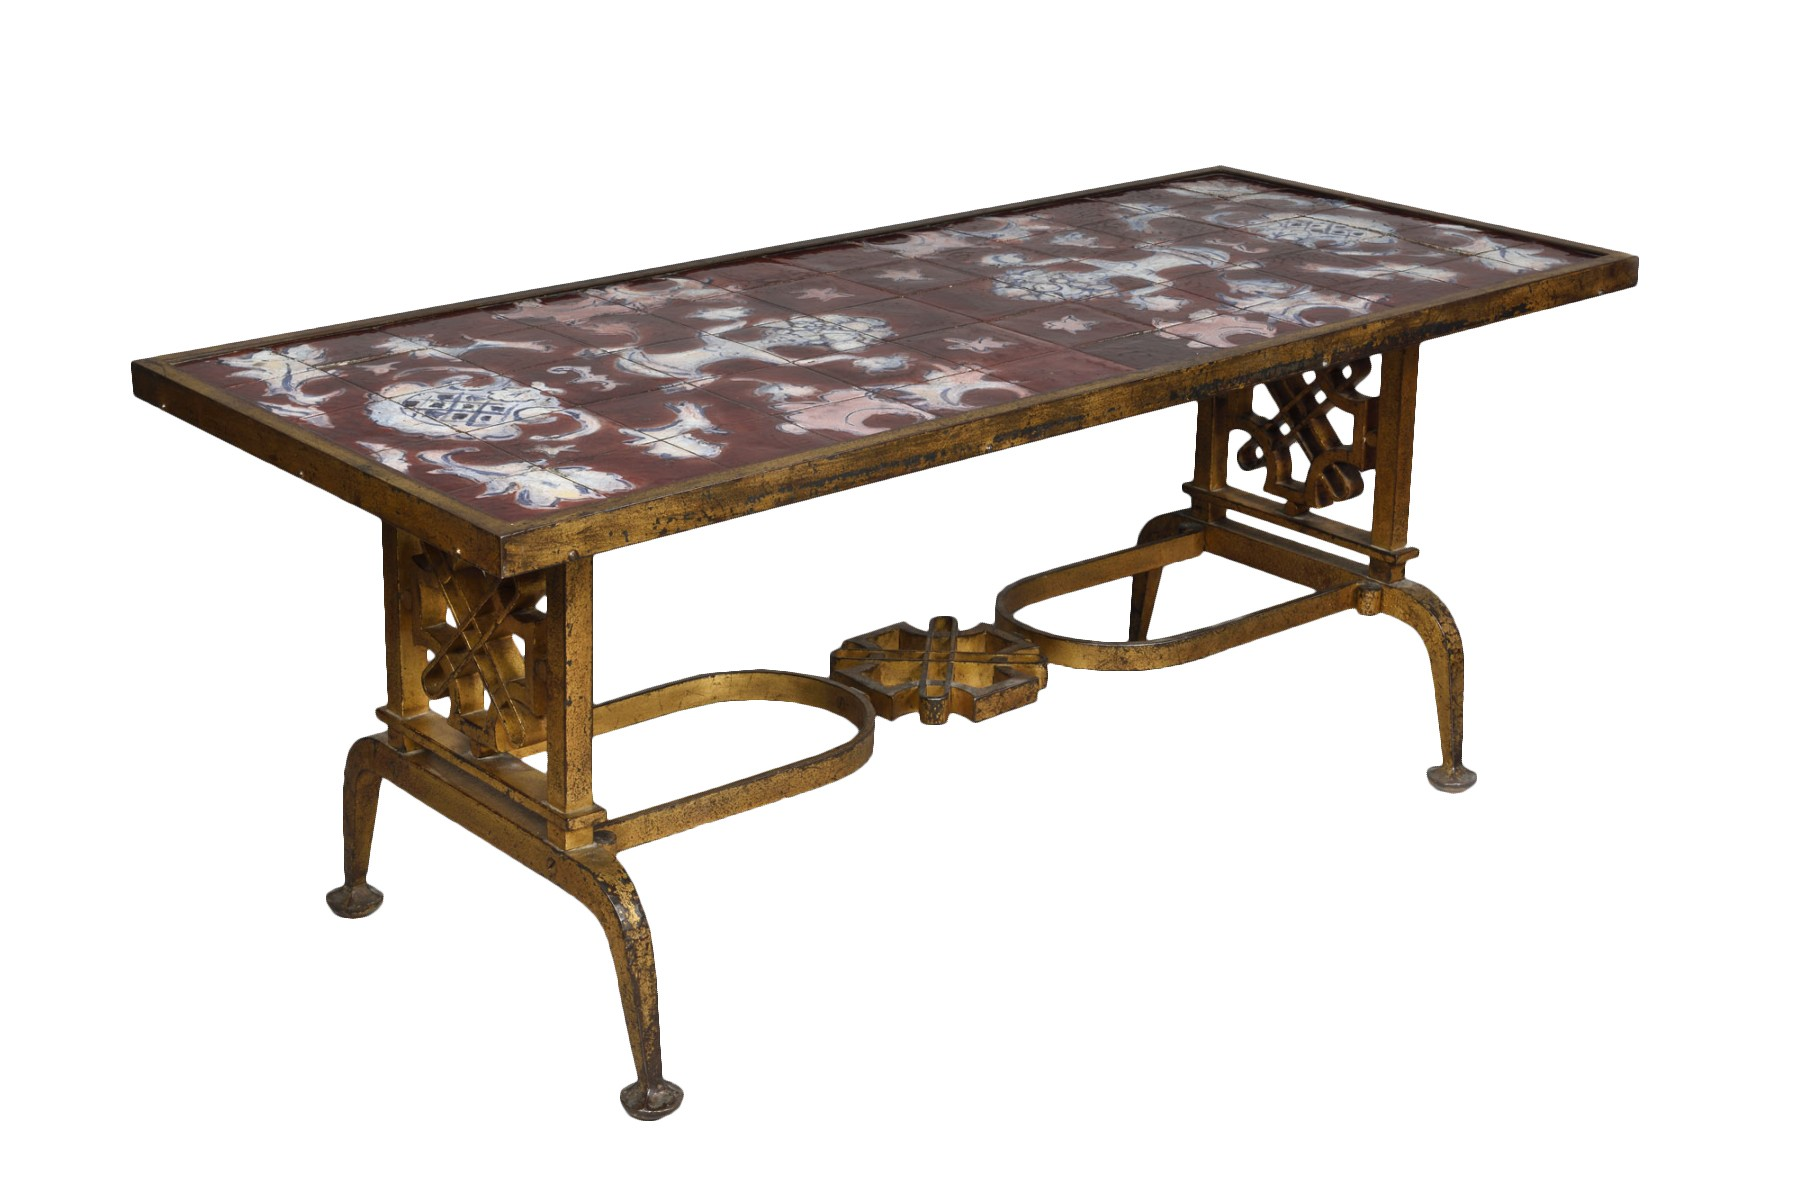 cast iron and ceramic coffee table gilbert poillerat 1902 1988